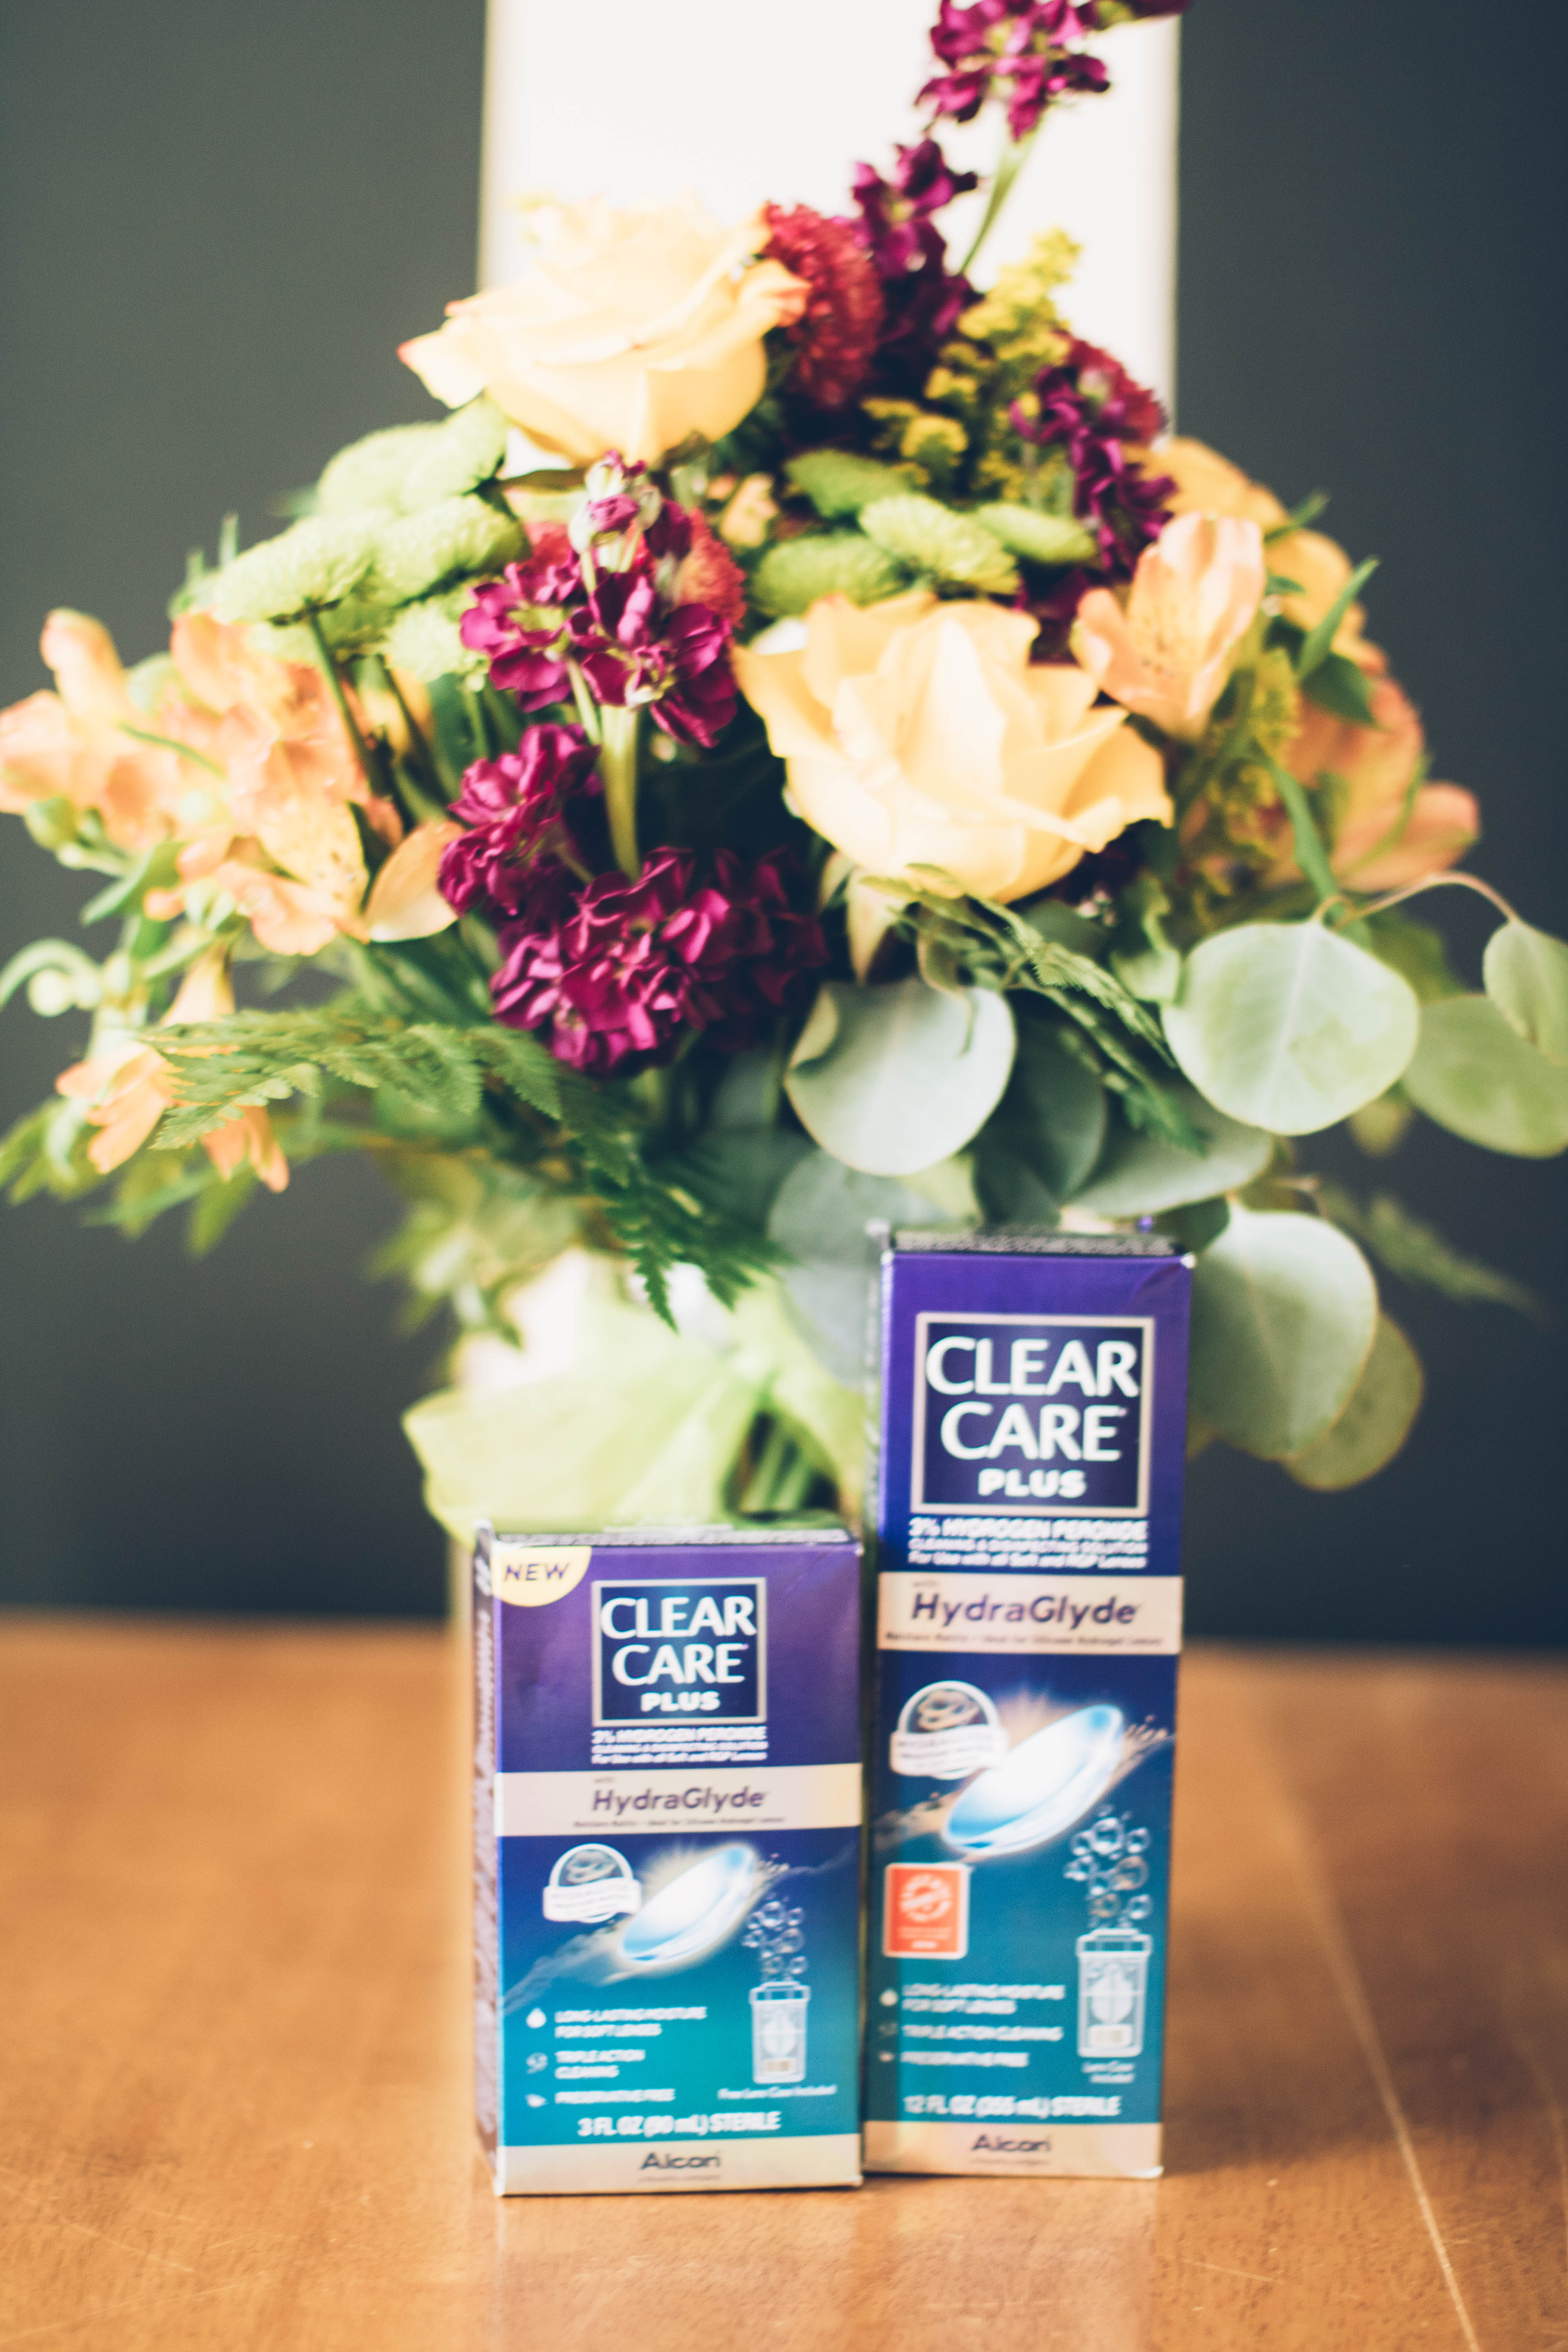 Clear Care-2